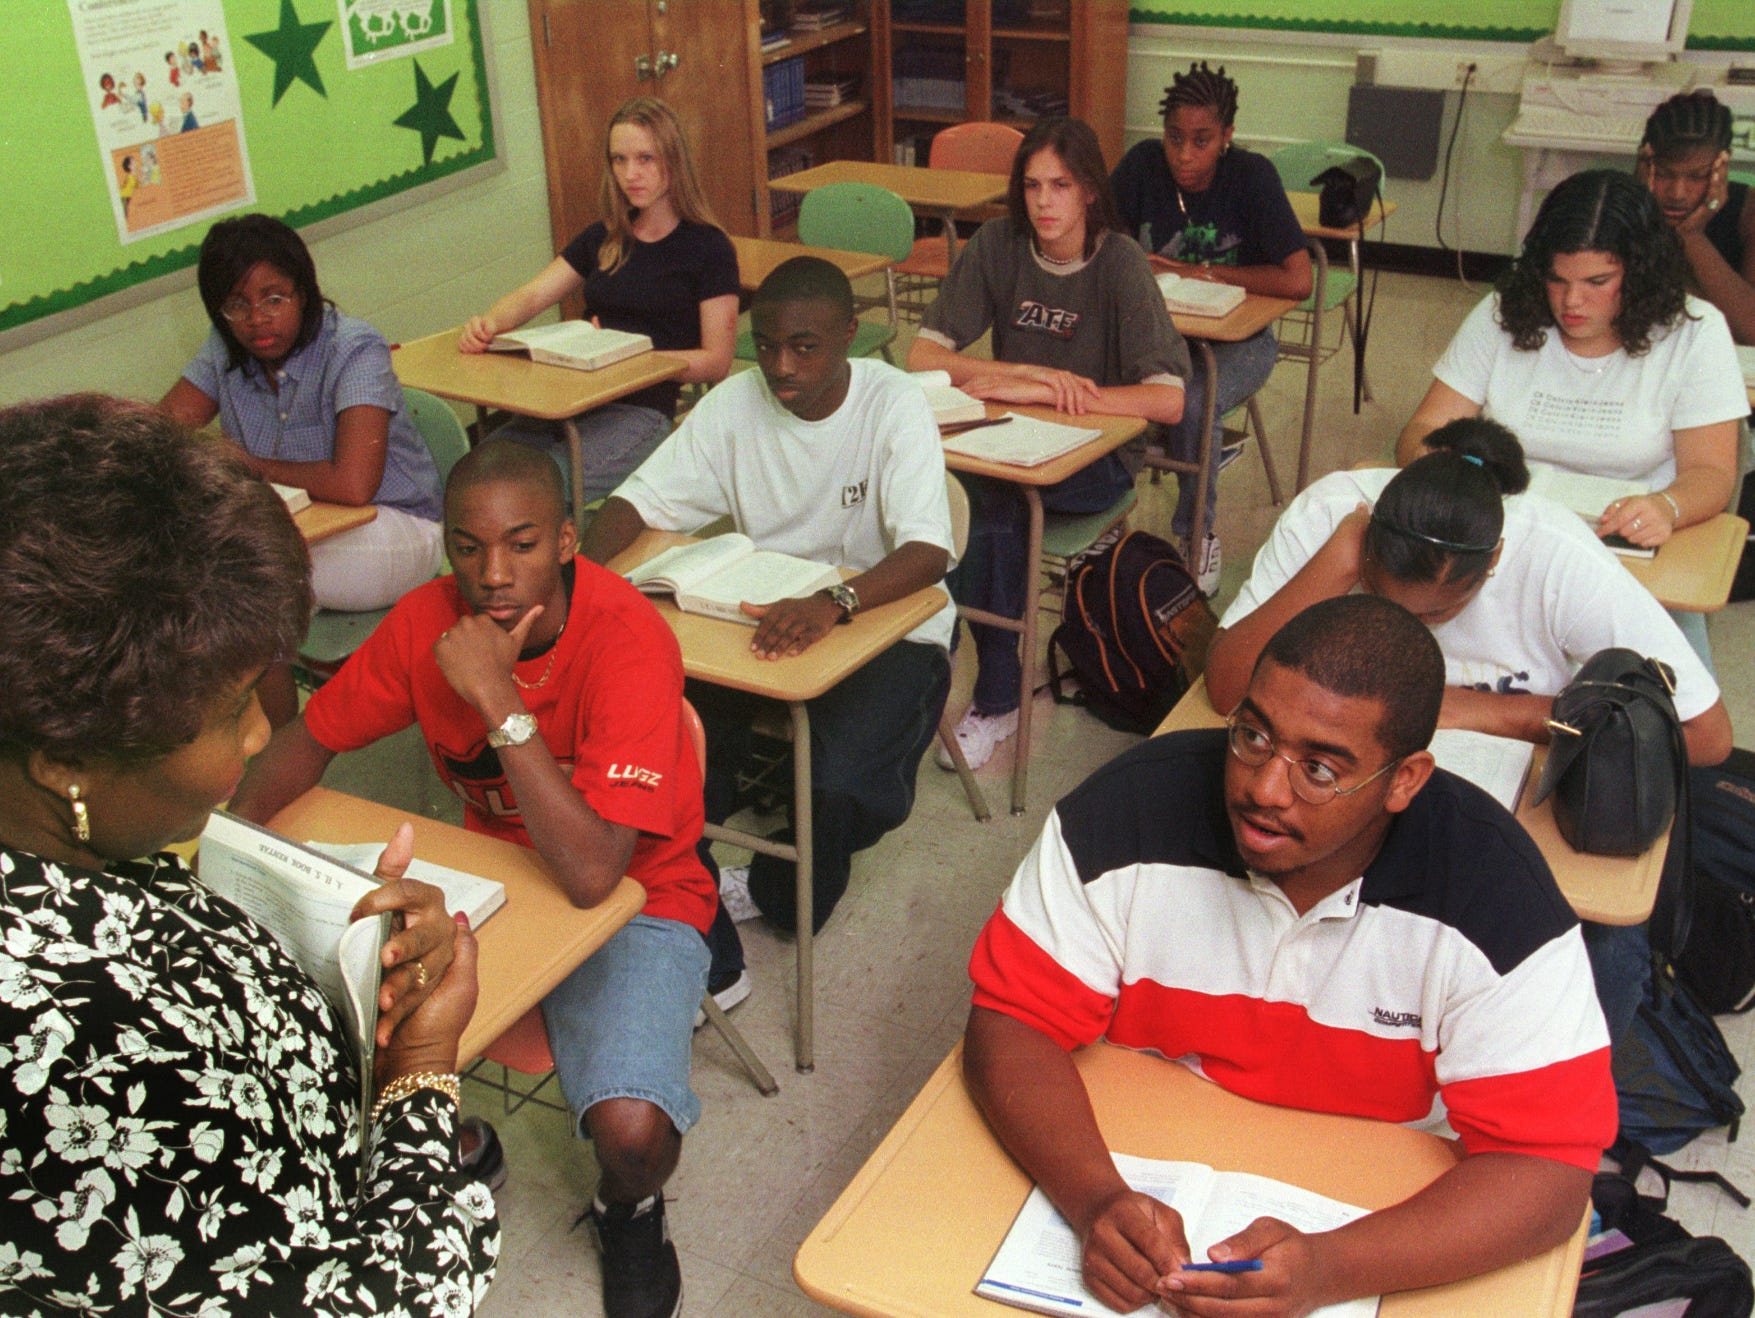 Students in Martha ArnoldÕs Advanced Placement senior English class at Arlington High School study SAT test subjects like vocabulary to help them prepare for the exam in 1999.